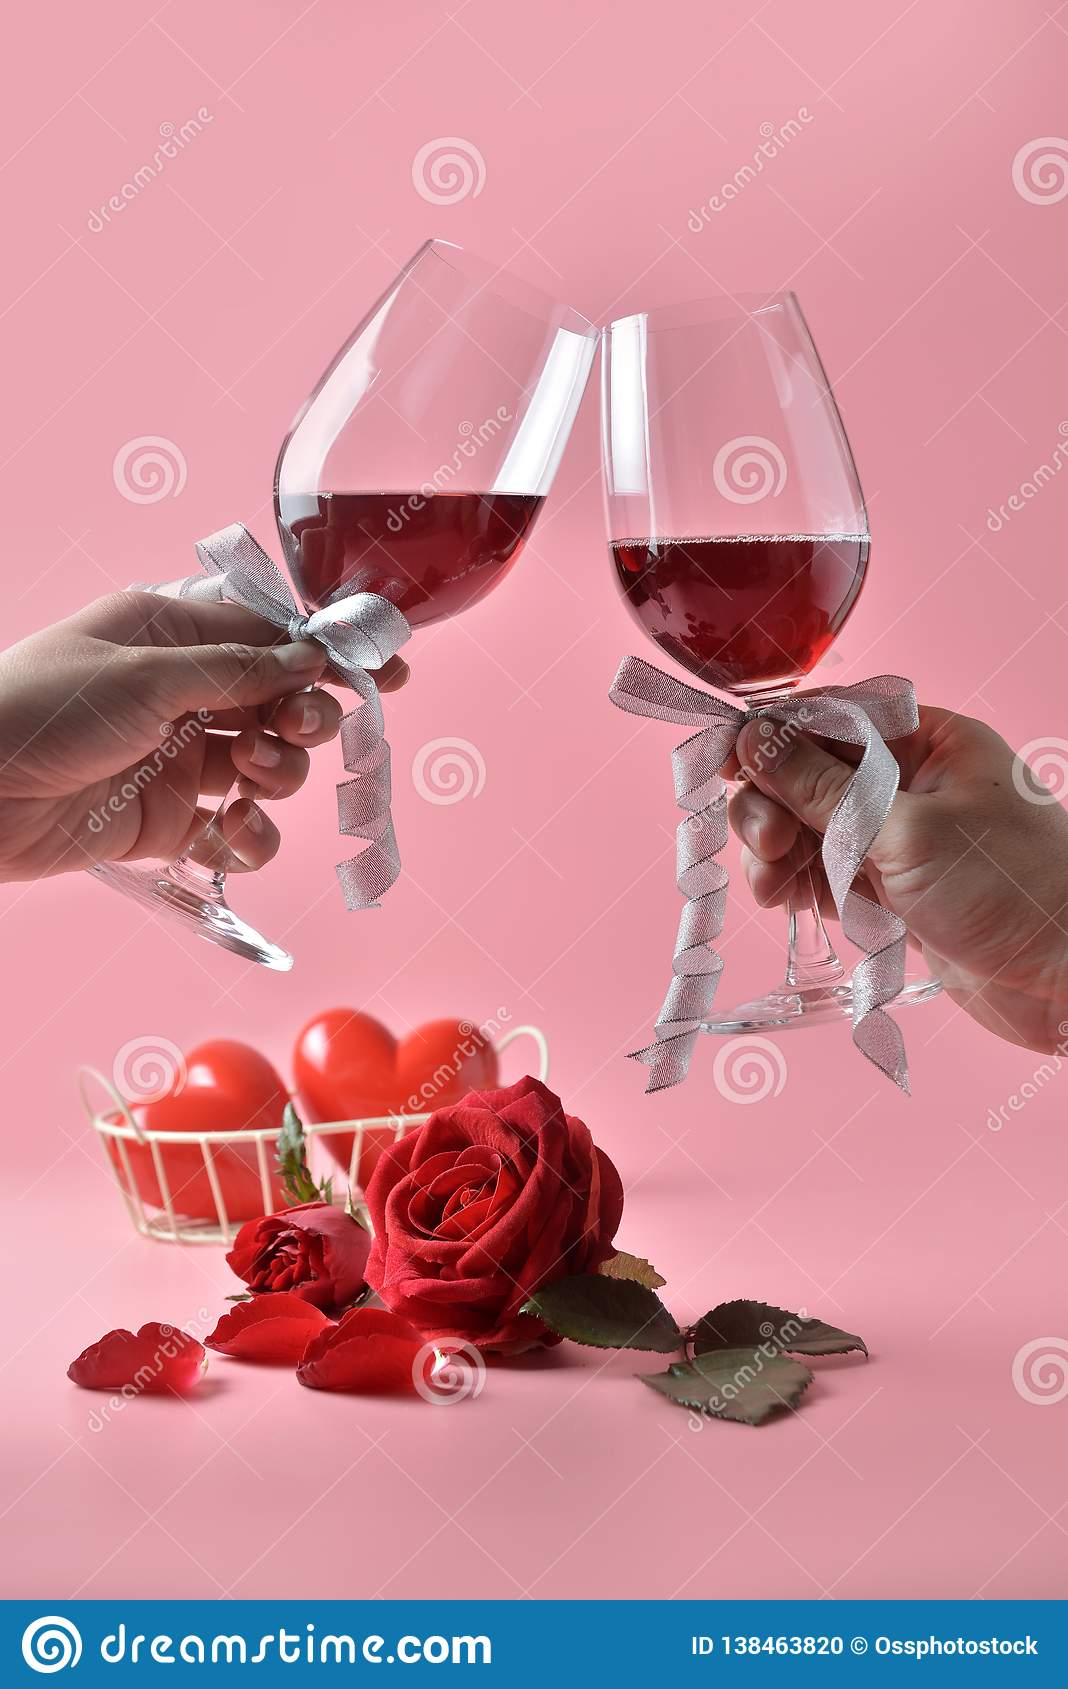 Clinking glasses of red wine in hands, with red rose on the bottom on pink background. Concept of Valentine`s Day